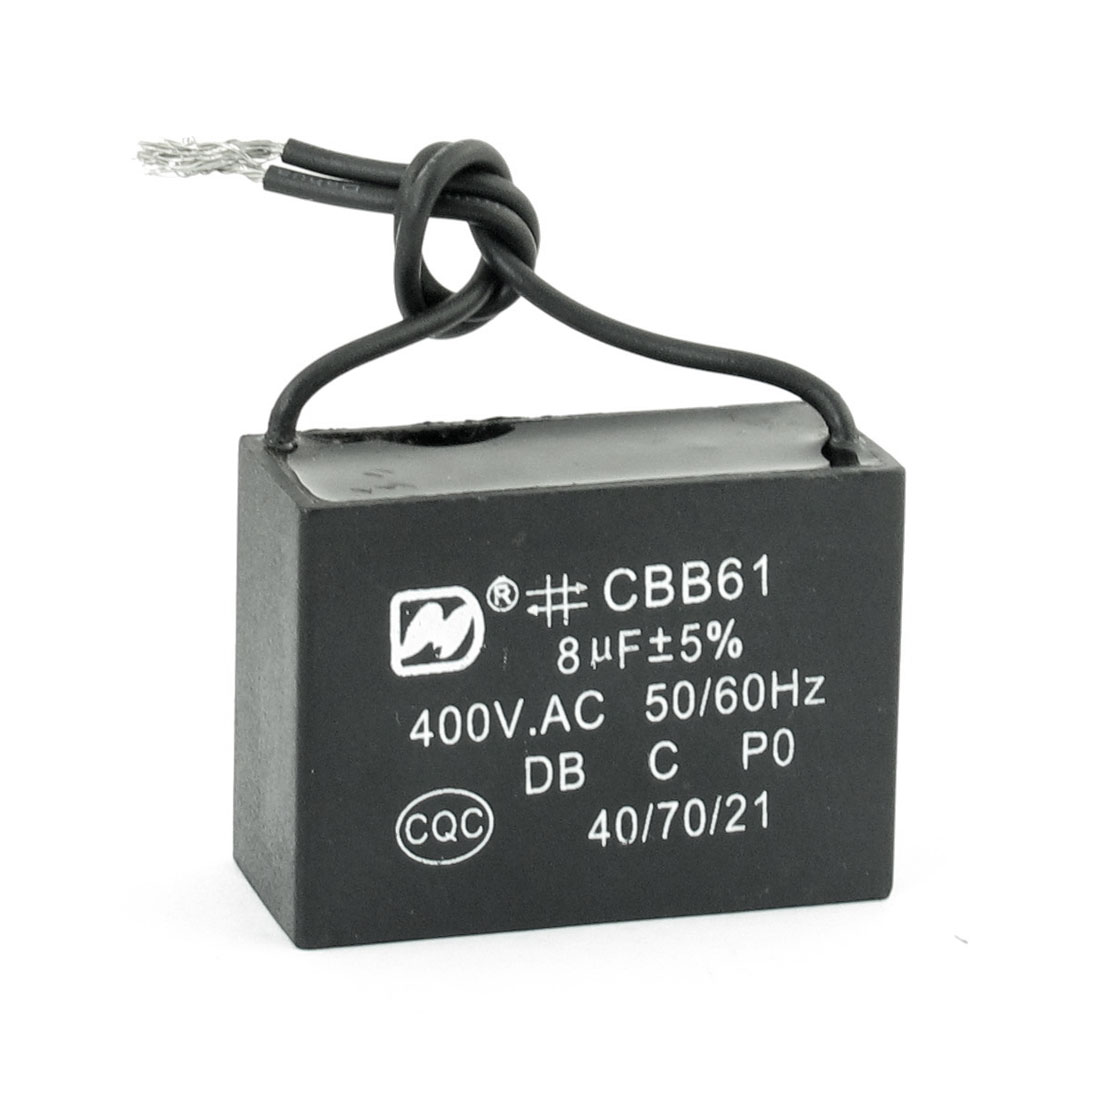 CBB61 400V AC 8uF 5% Tolerance Wired Fan Motor Capacitor